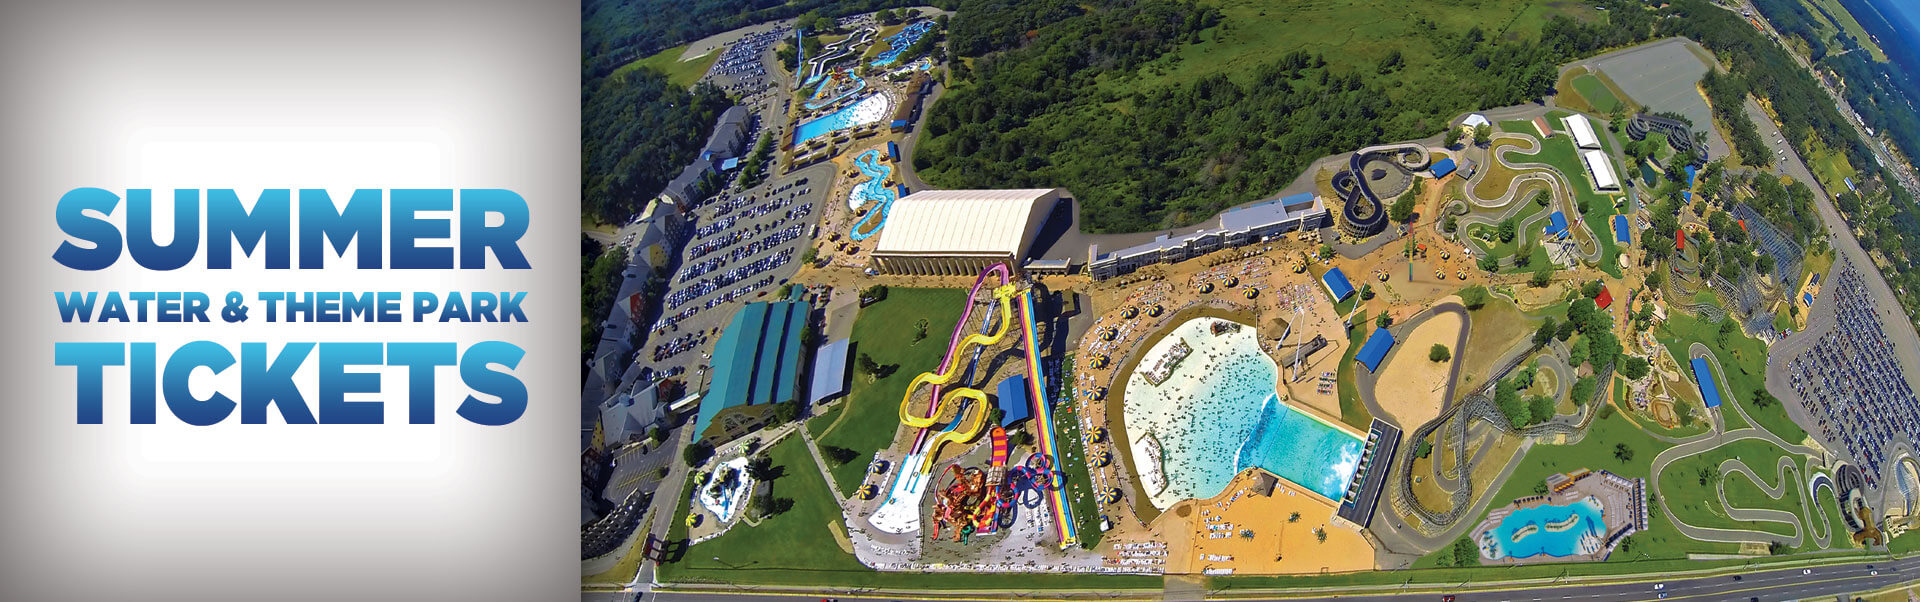 Online Ticket Special Mt Olympus Water Amp Theme Park